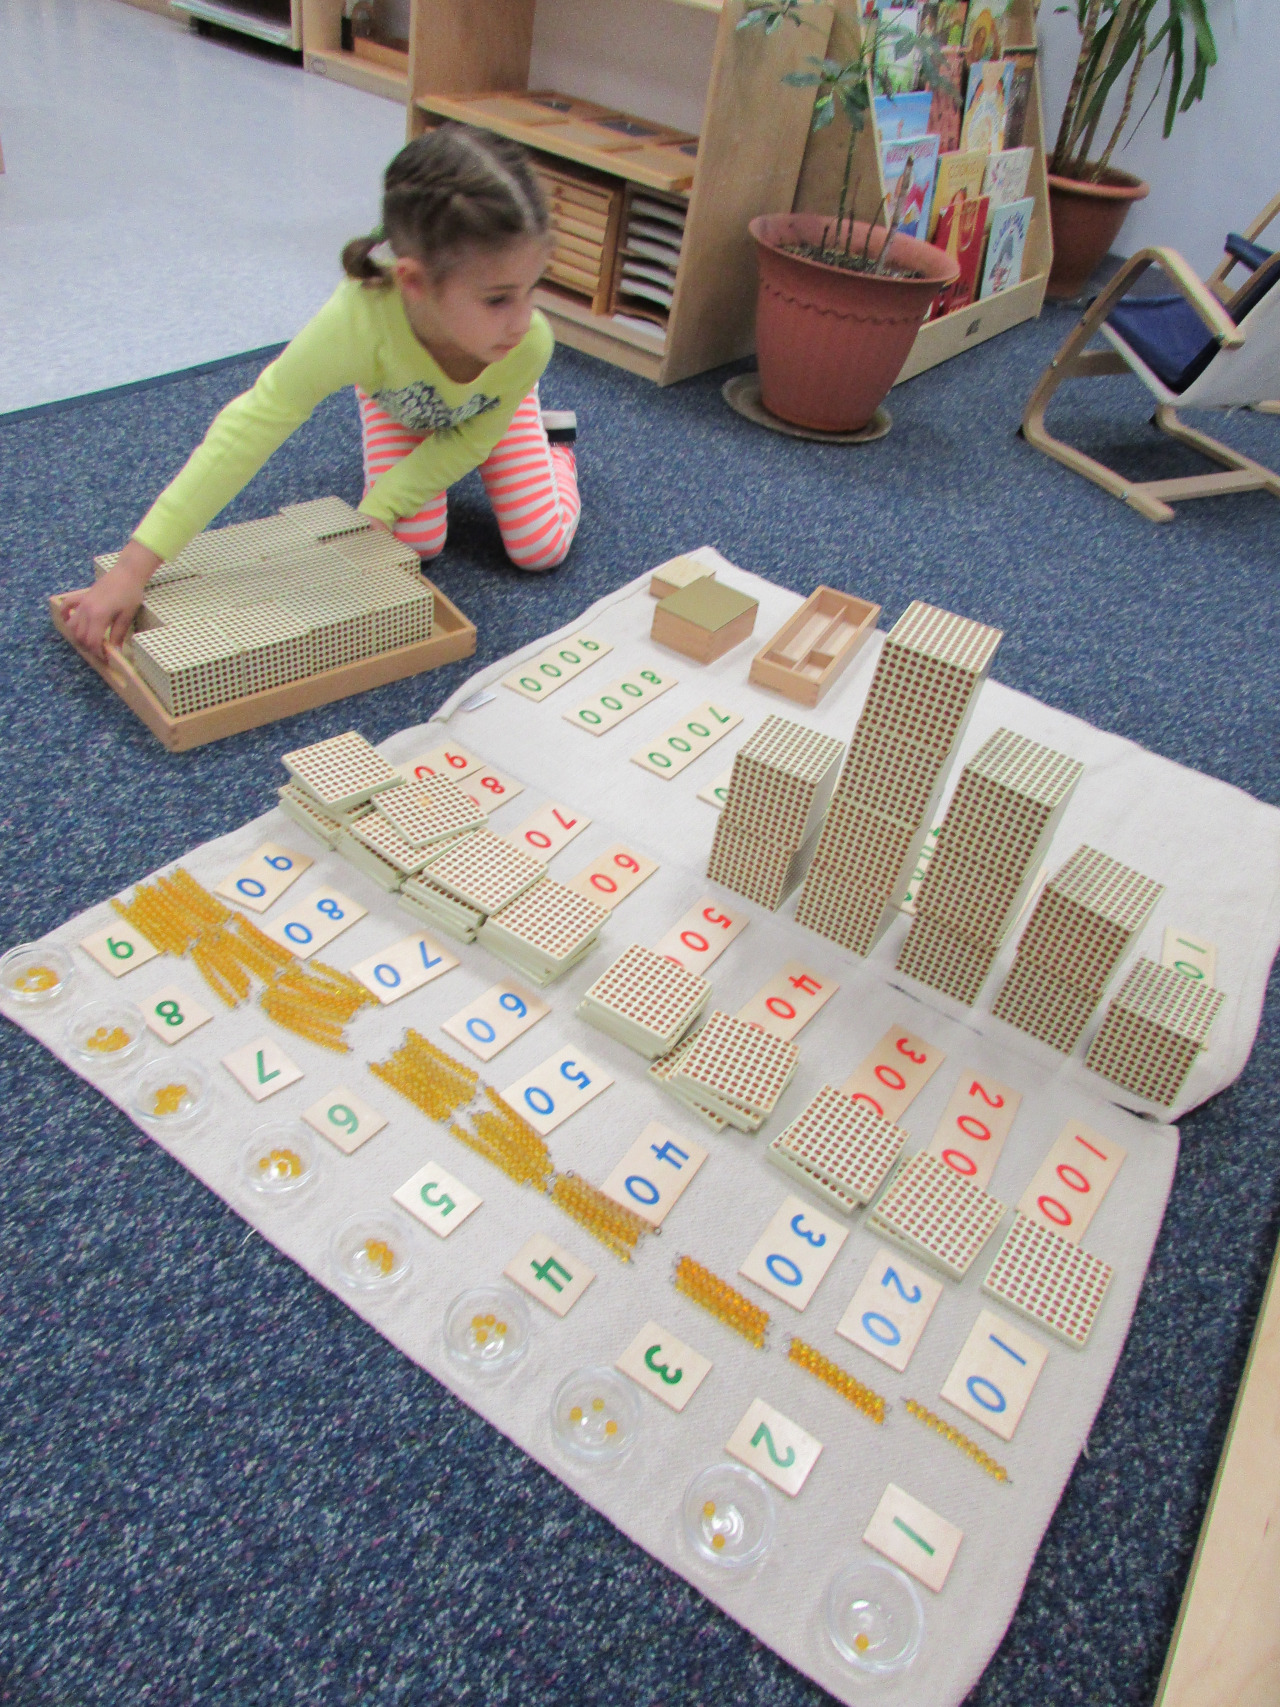 Some Primary 3 student spracticed linear counting with the Hundred Board while another student used the decimal system materials to associate numbers and quantities while learning place value.